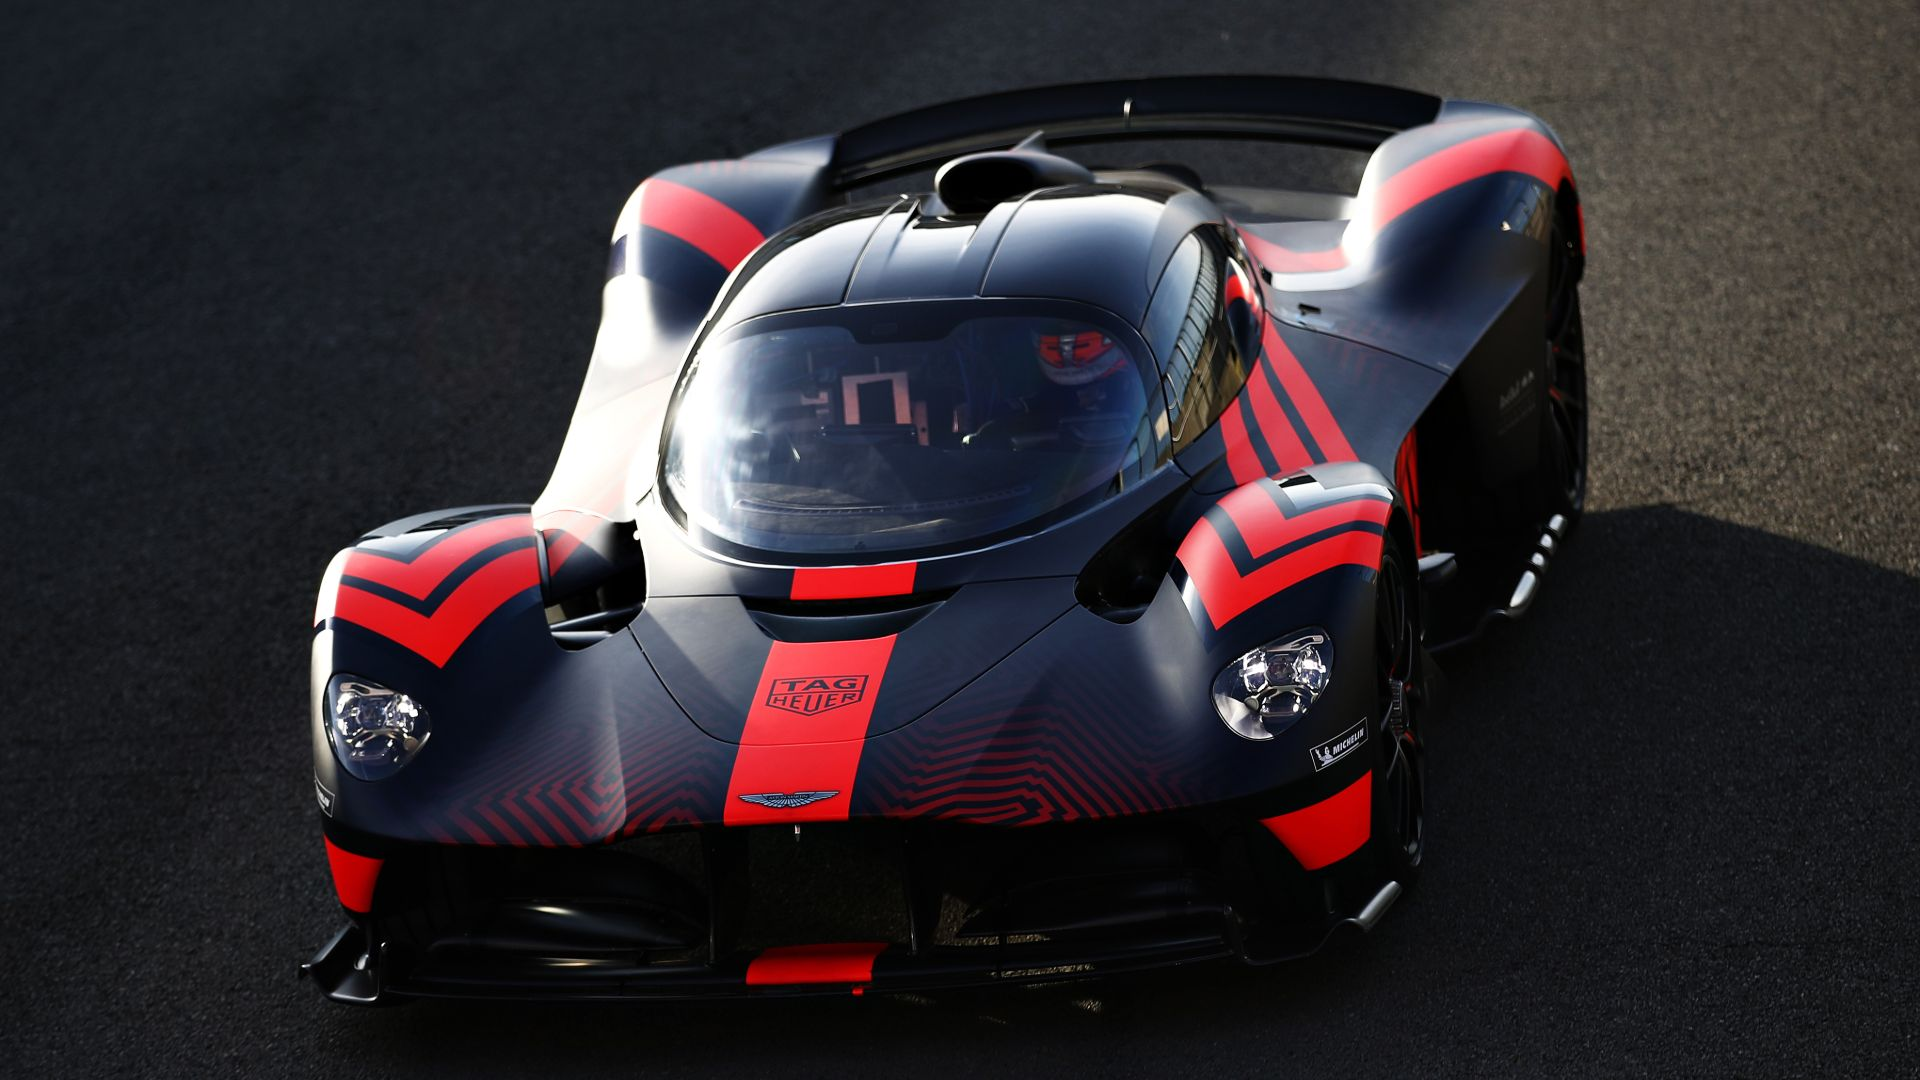 Aston Martin Valkyrie prototypes tested by F1 drivers at Silverstone